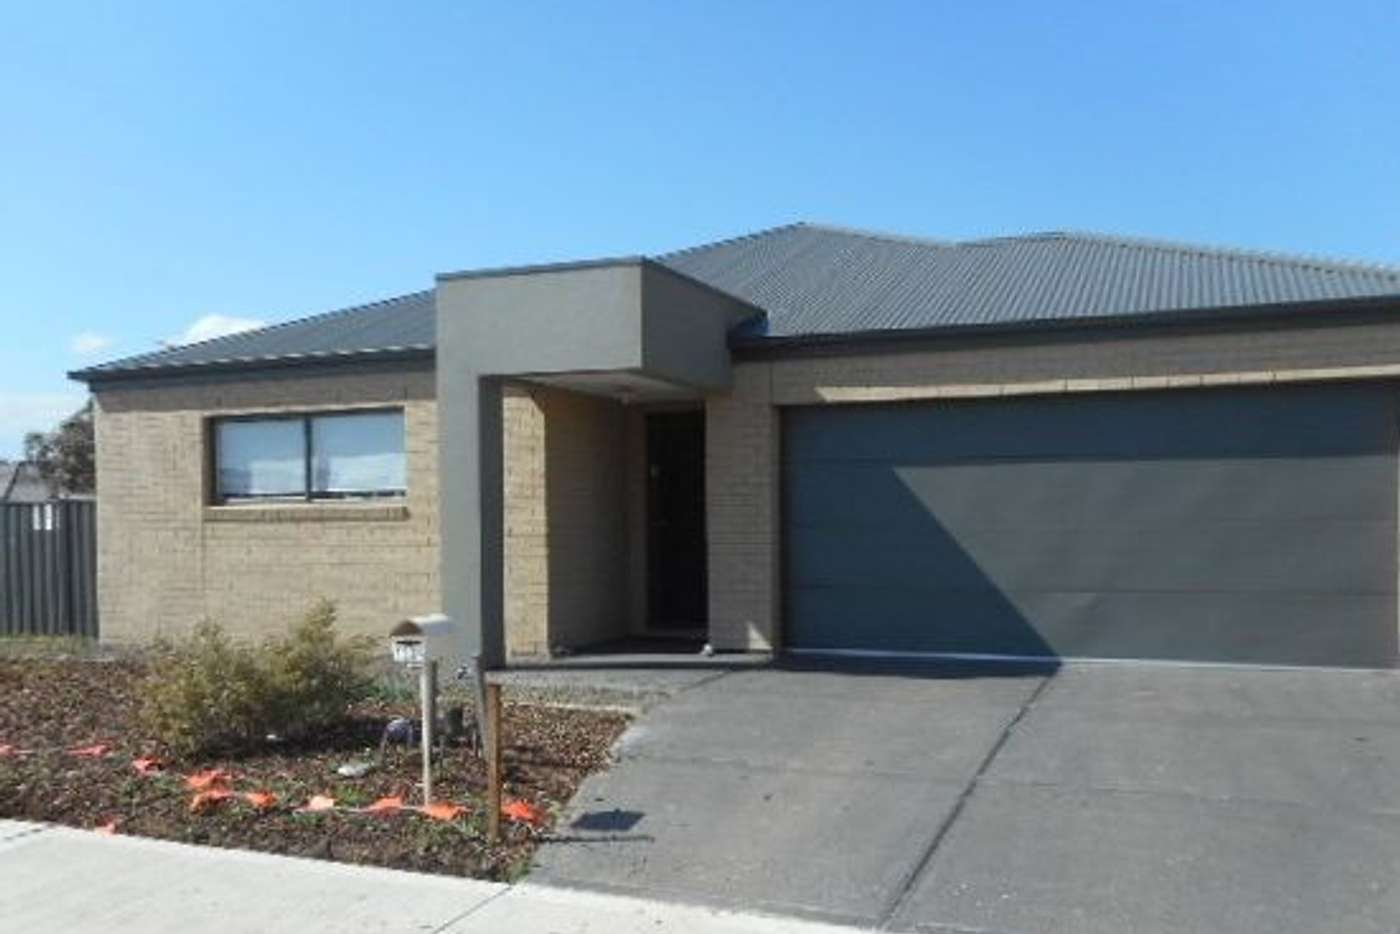 Main view of Homely house listing, 1234 Ison Road, Wyndham Vale VIC 3024